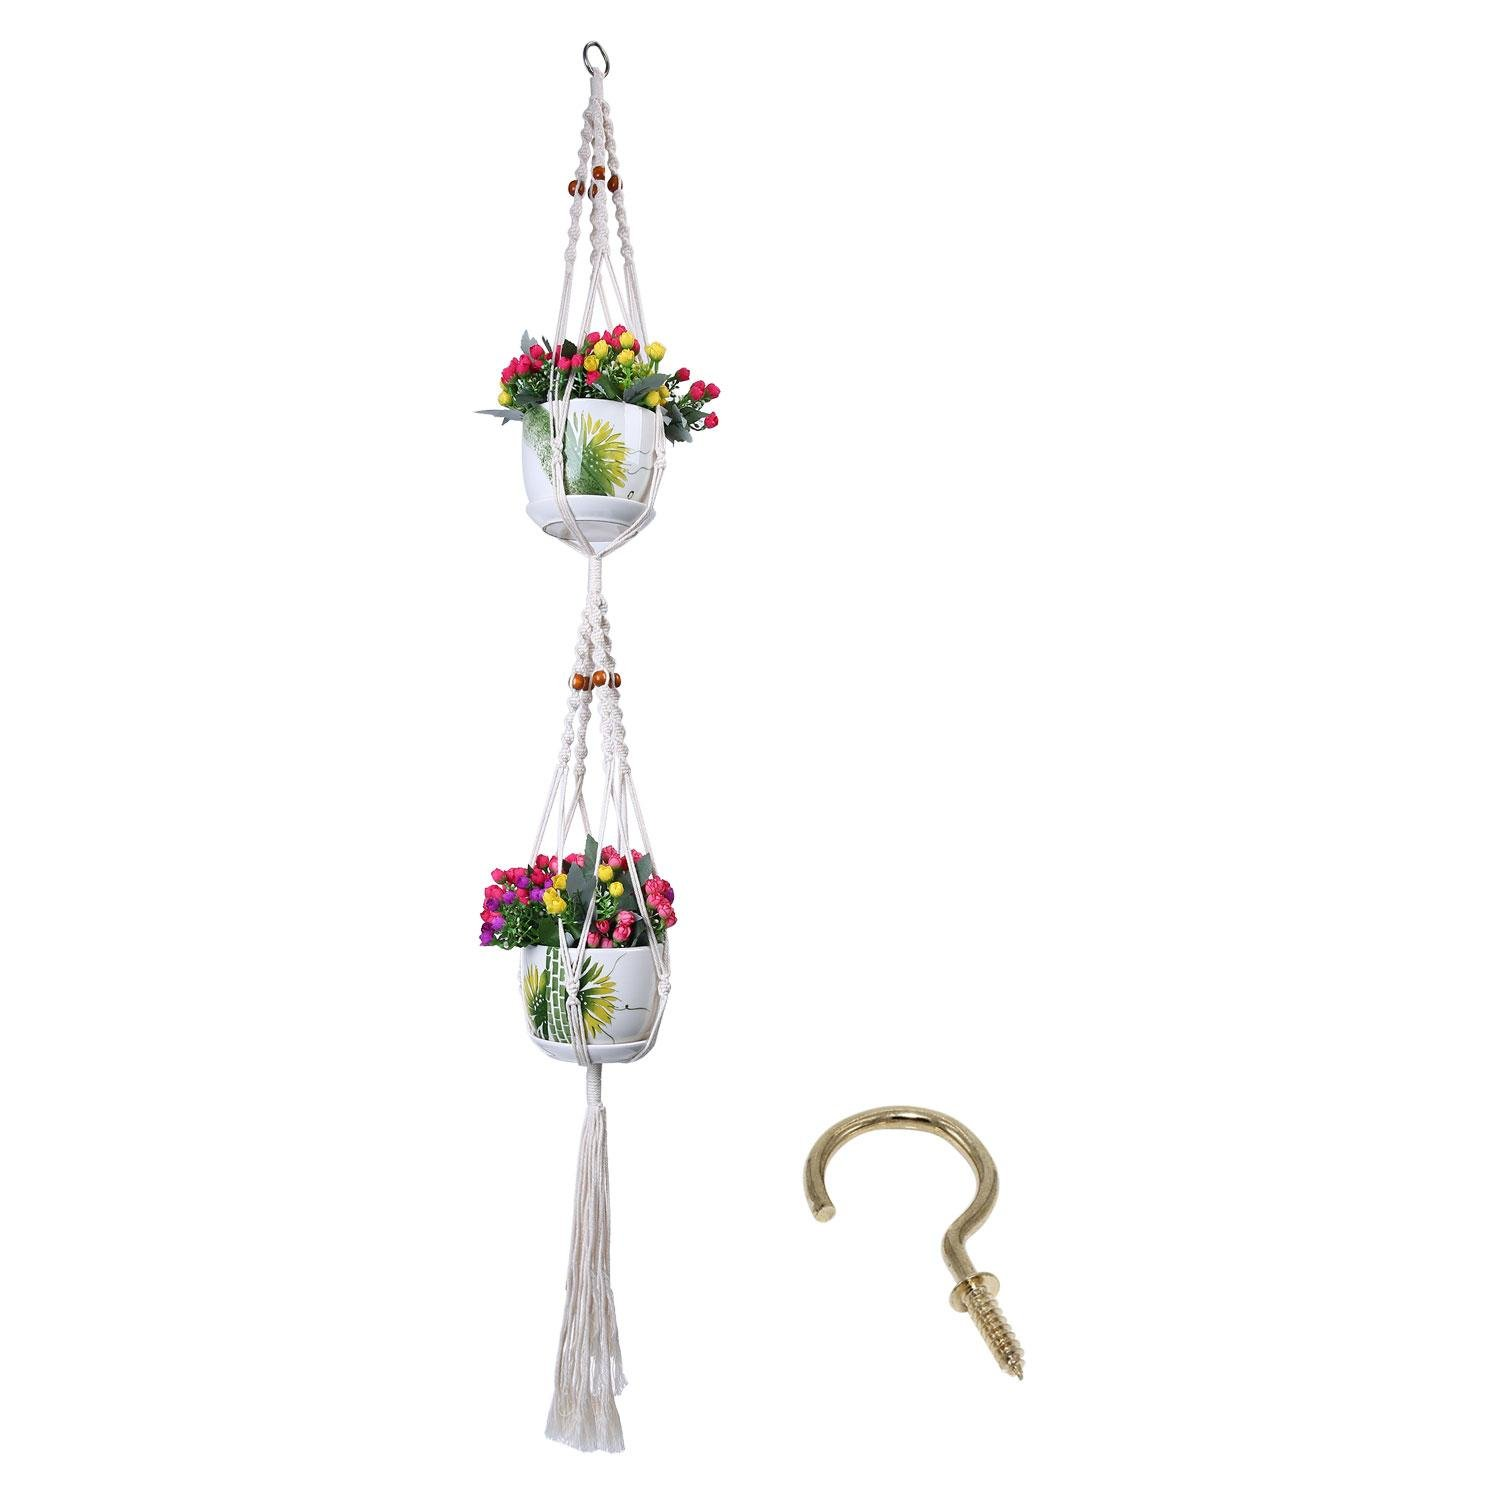 Umiwe Macrame Double Plant Hanger with Plant Hook, 4 Legs Indoor Outdoor Patio Deck Ceiling Plant Holder with Beads 57 Inch